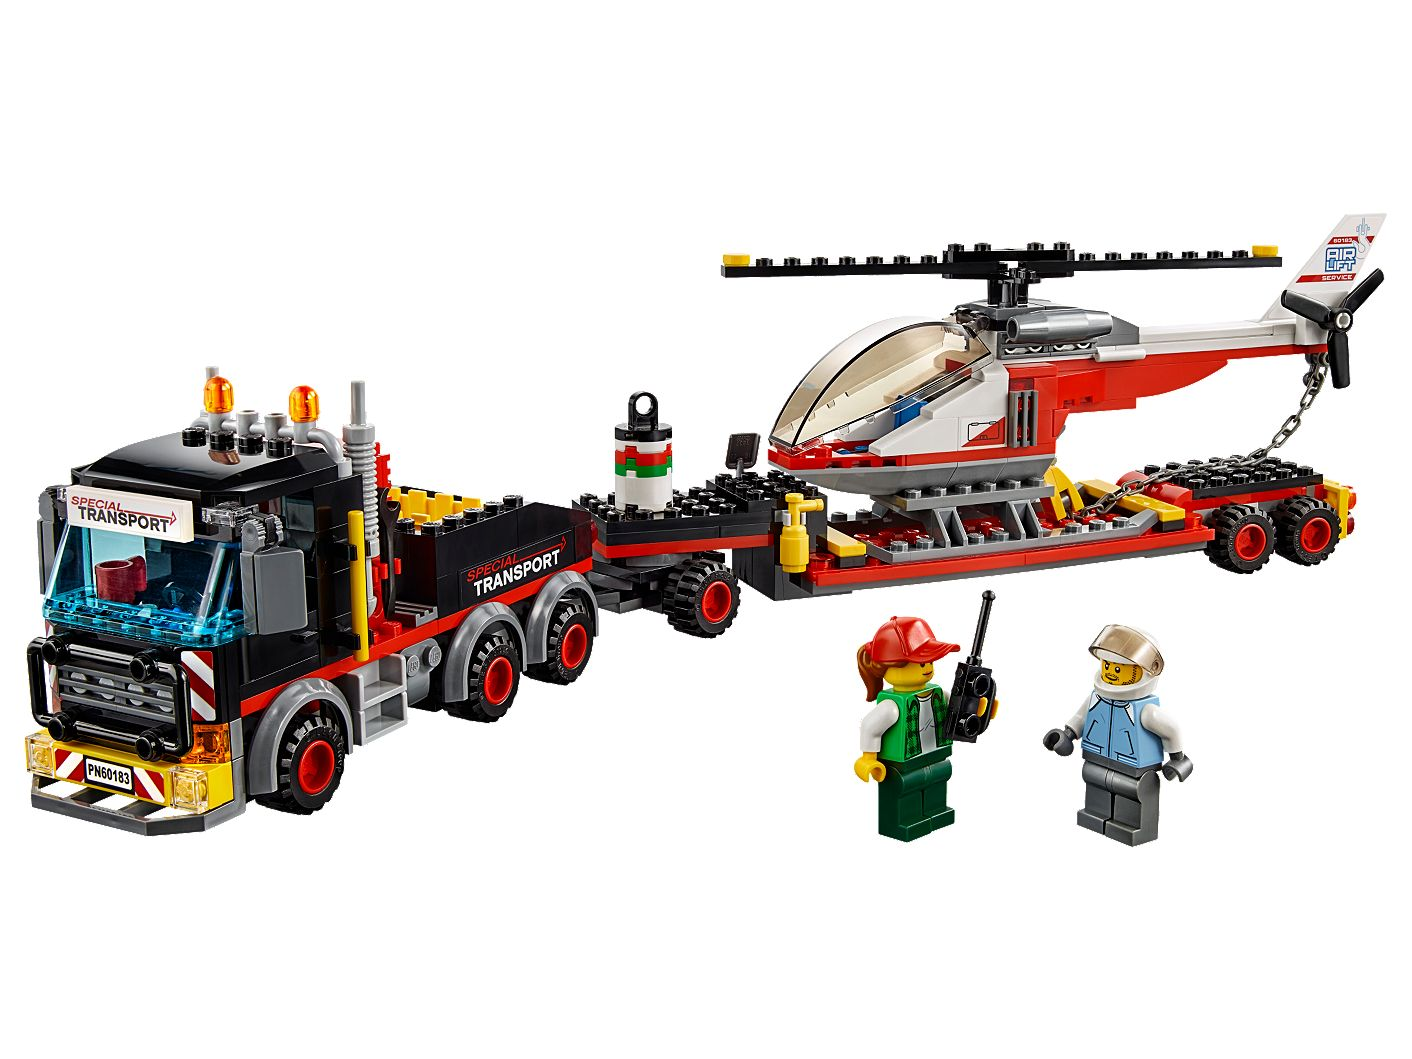 Heavy Cargo Transport 60183 | City | Buy online at the Official LEGO® Shop US